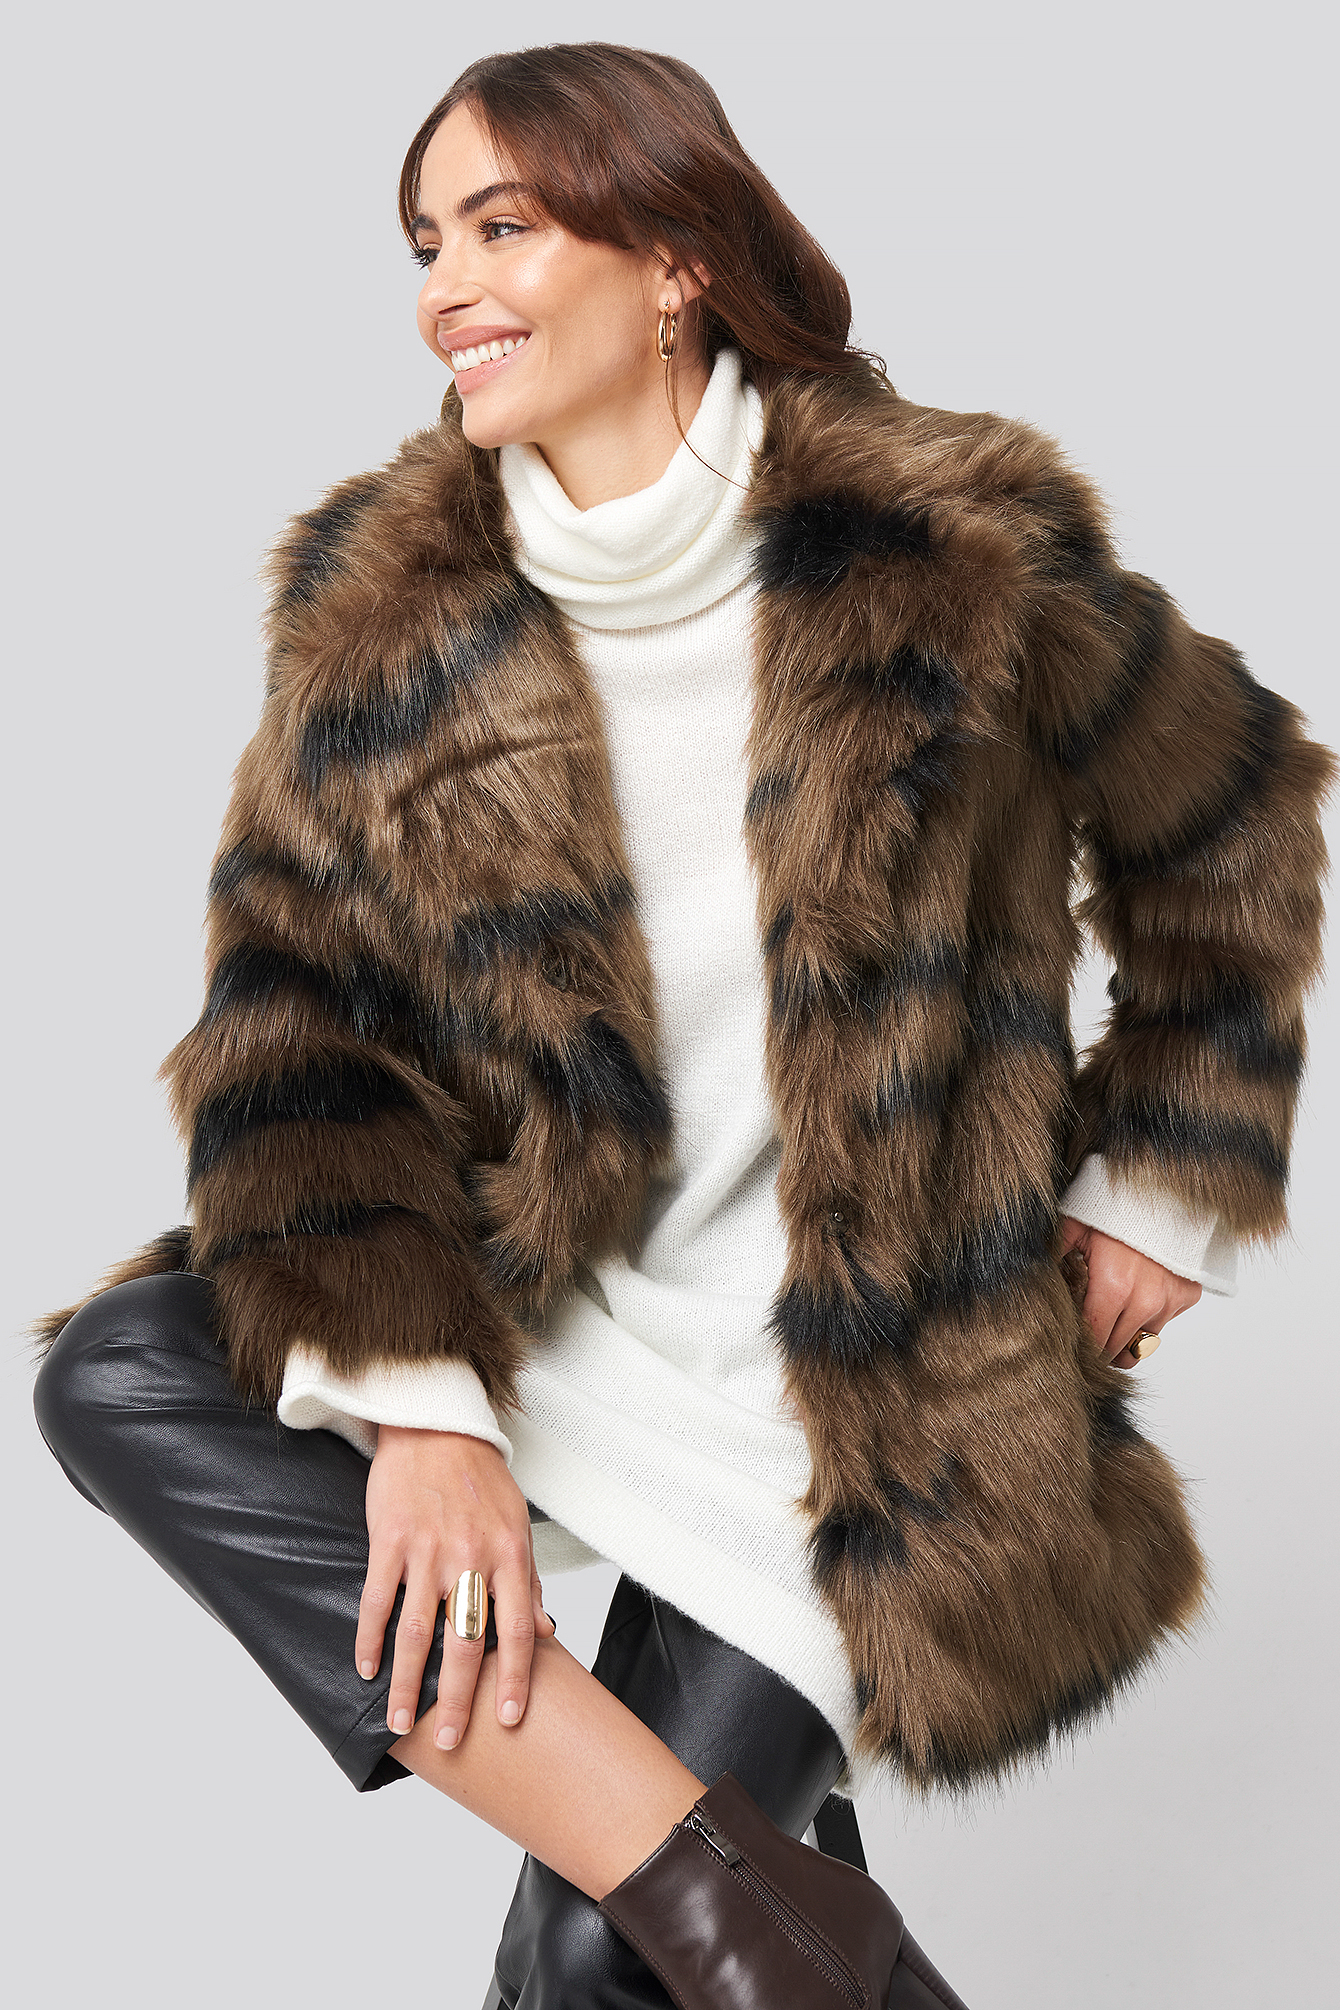 hannalicious x na-kd -  Cropped Sleeve Faux Fur Jacket - Brown